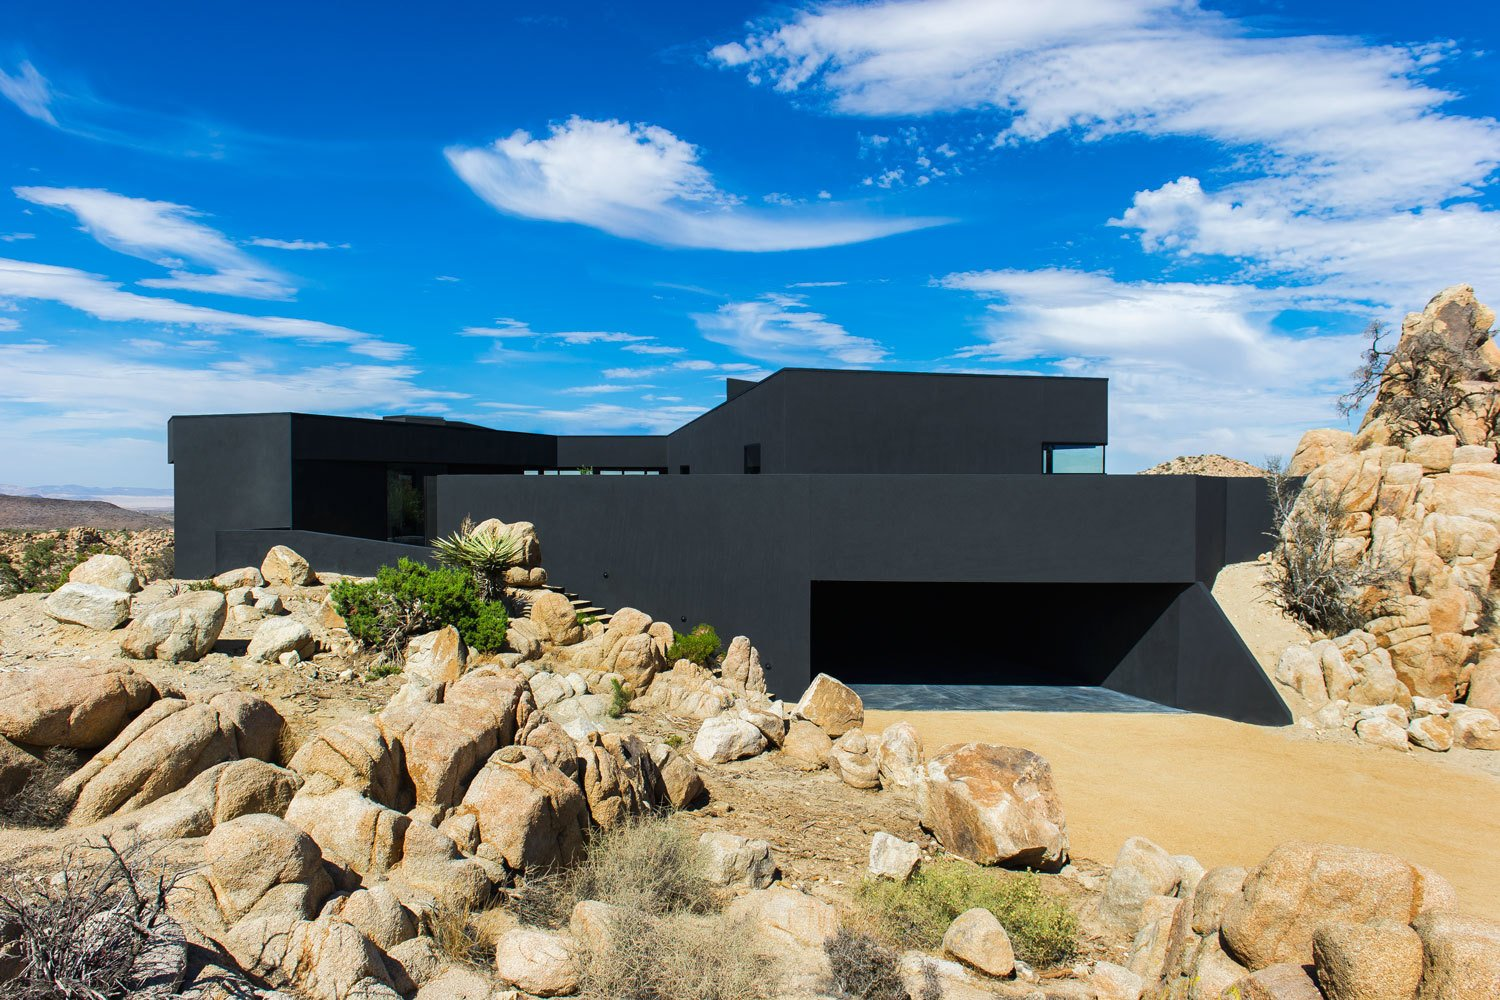 The house seems to claw onto the surrounding landscape, nestled on an outcropping with nearly 360 degree views of the surrounding desert.